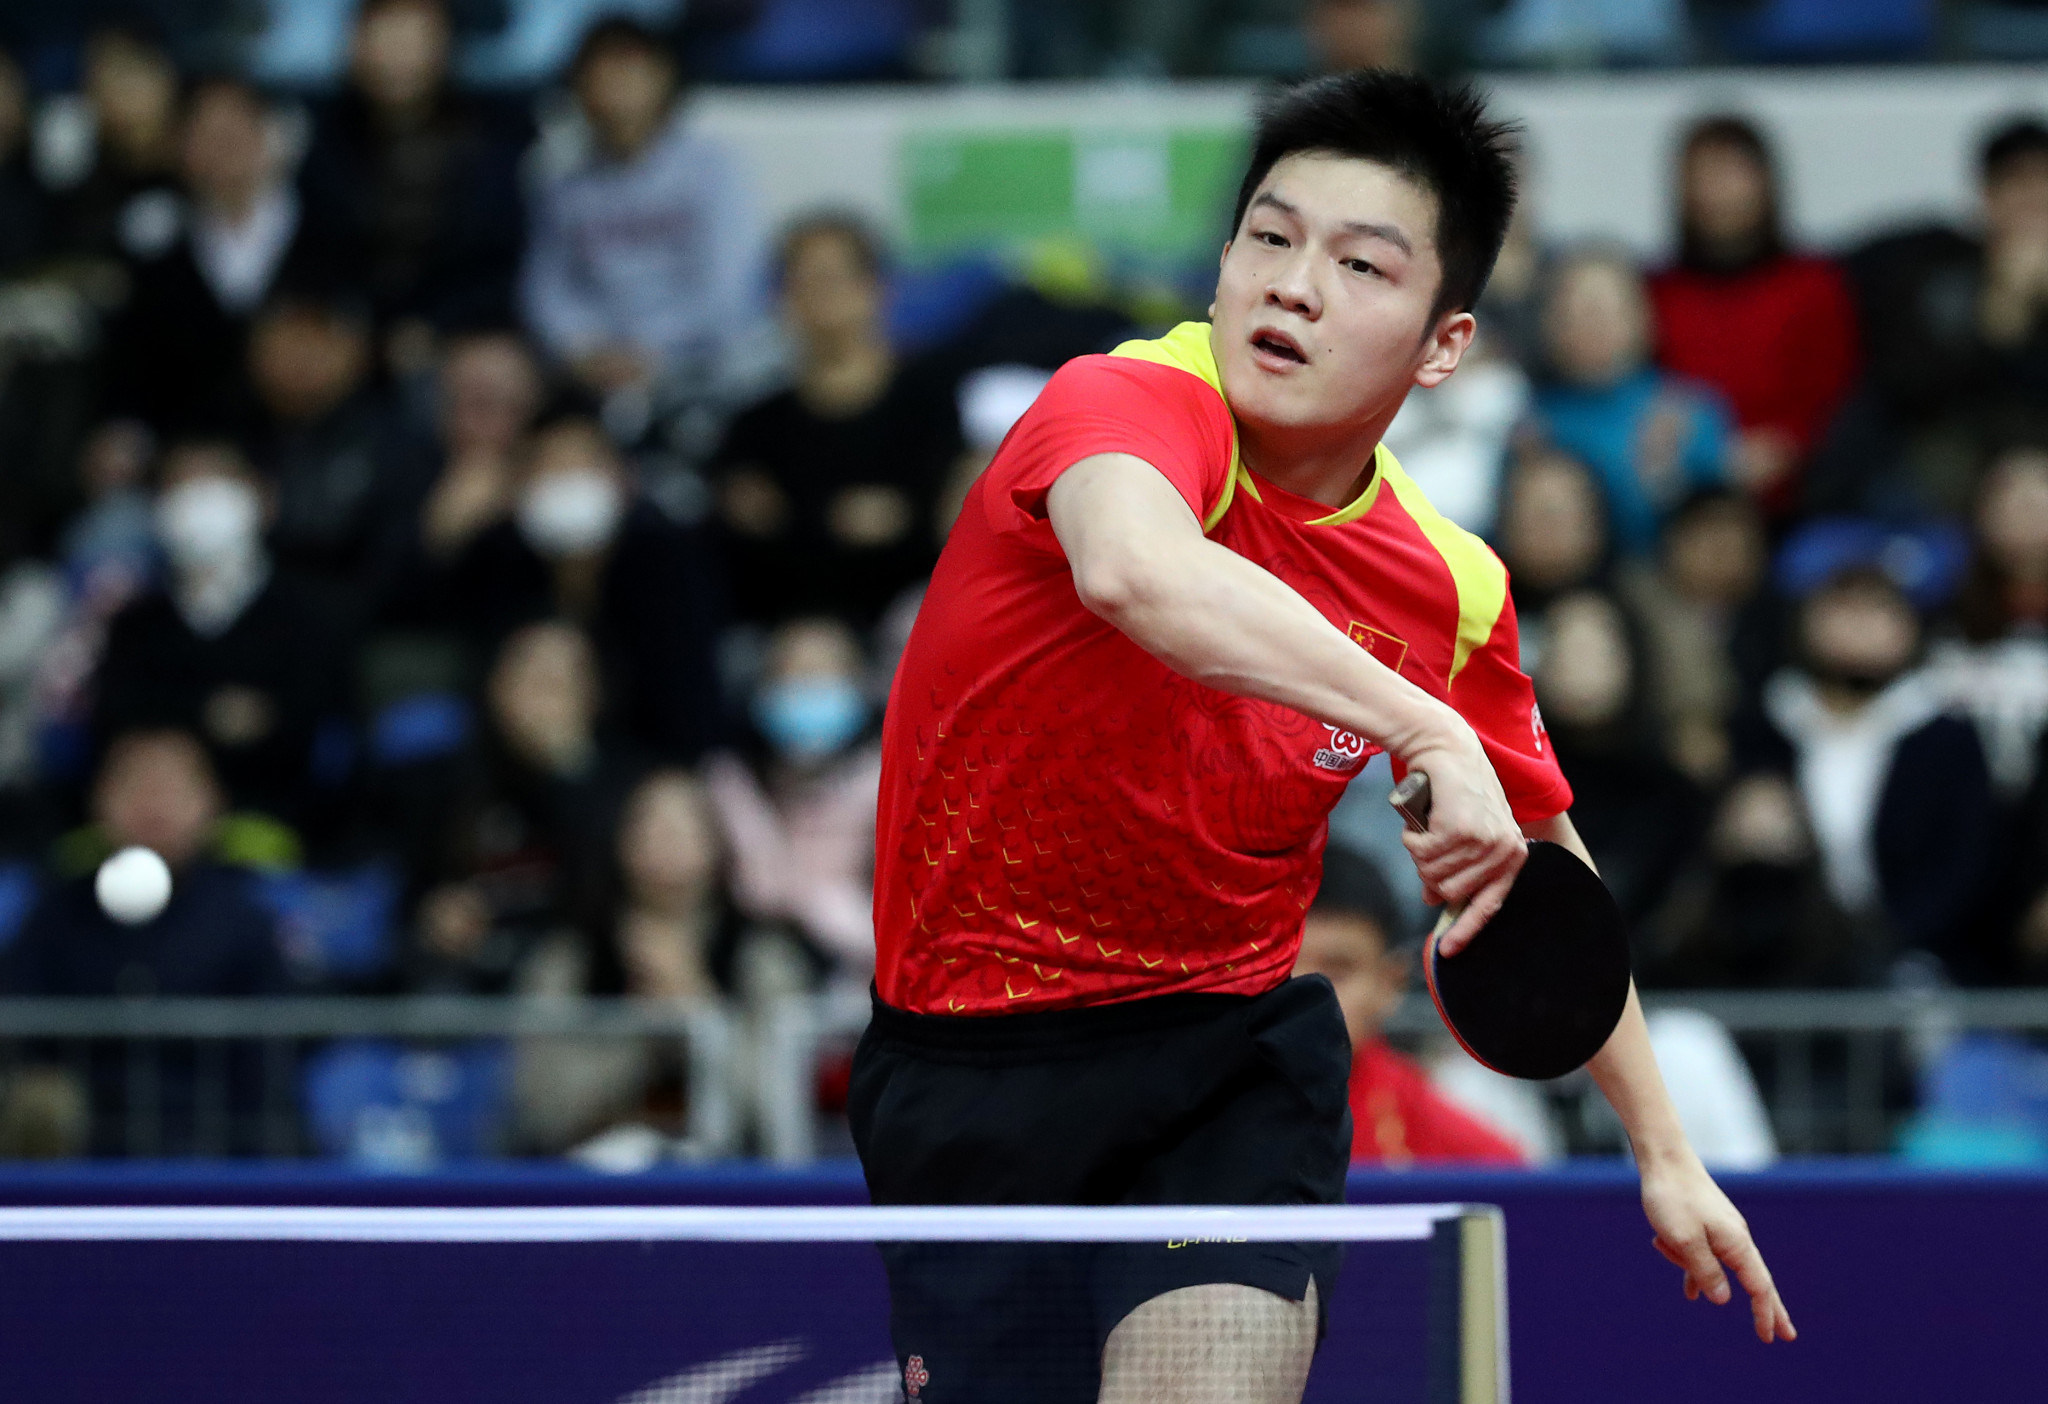 Fan Zhendong is one match away from defending his men's singles title ©Getty Images